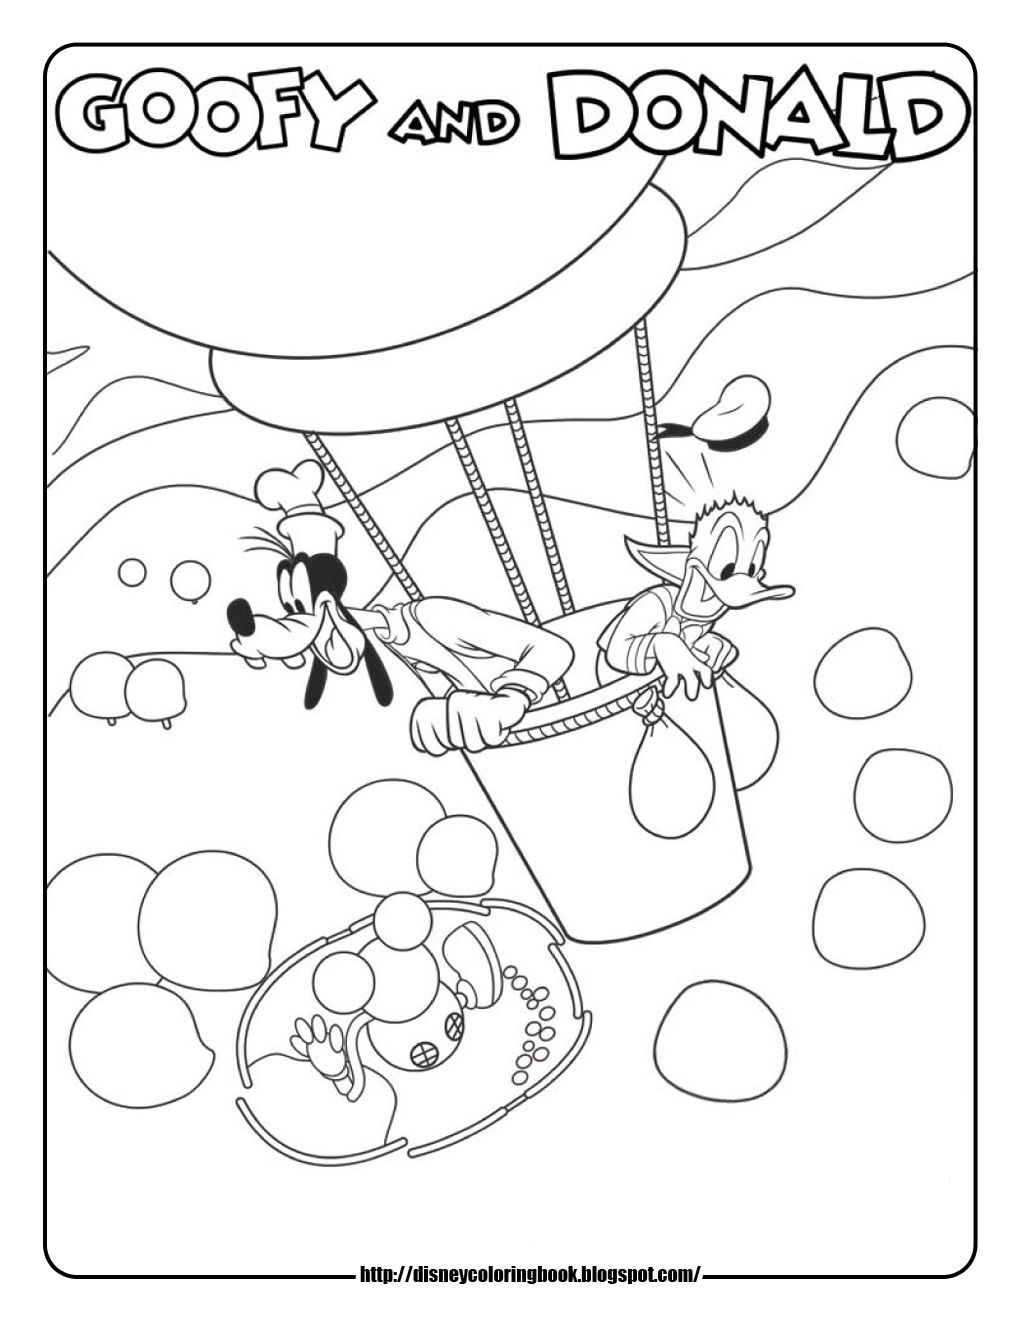 mickey mouse clubhouse coloring page mickey mouse clubhouse coloring pages 8 mickey mouse mouse mickey page coloring clubhouse